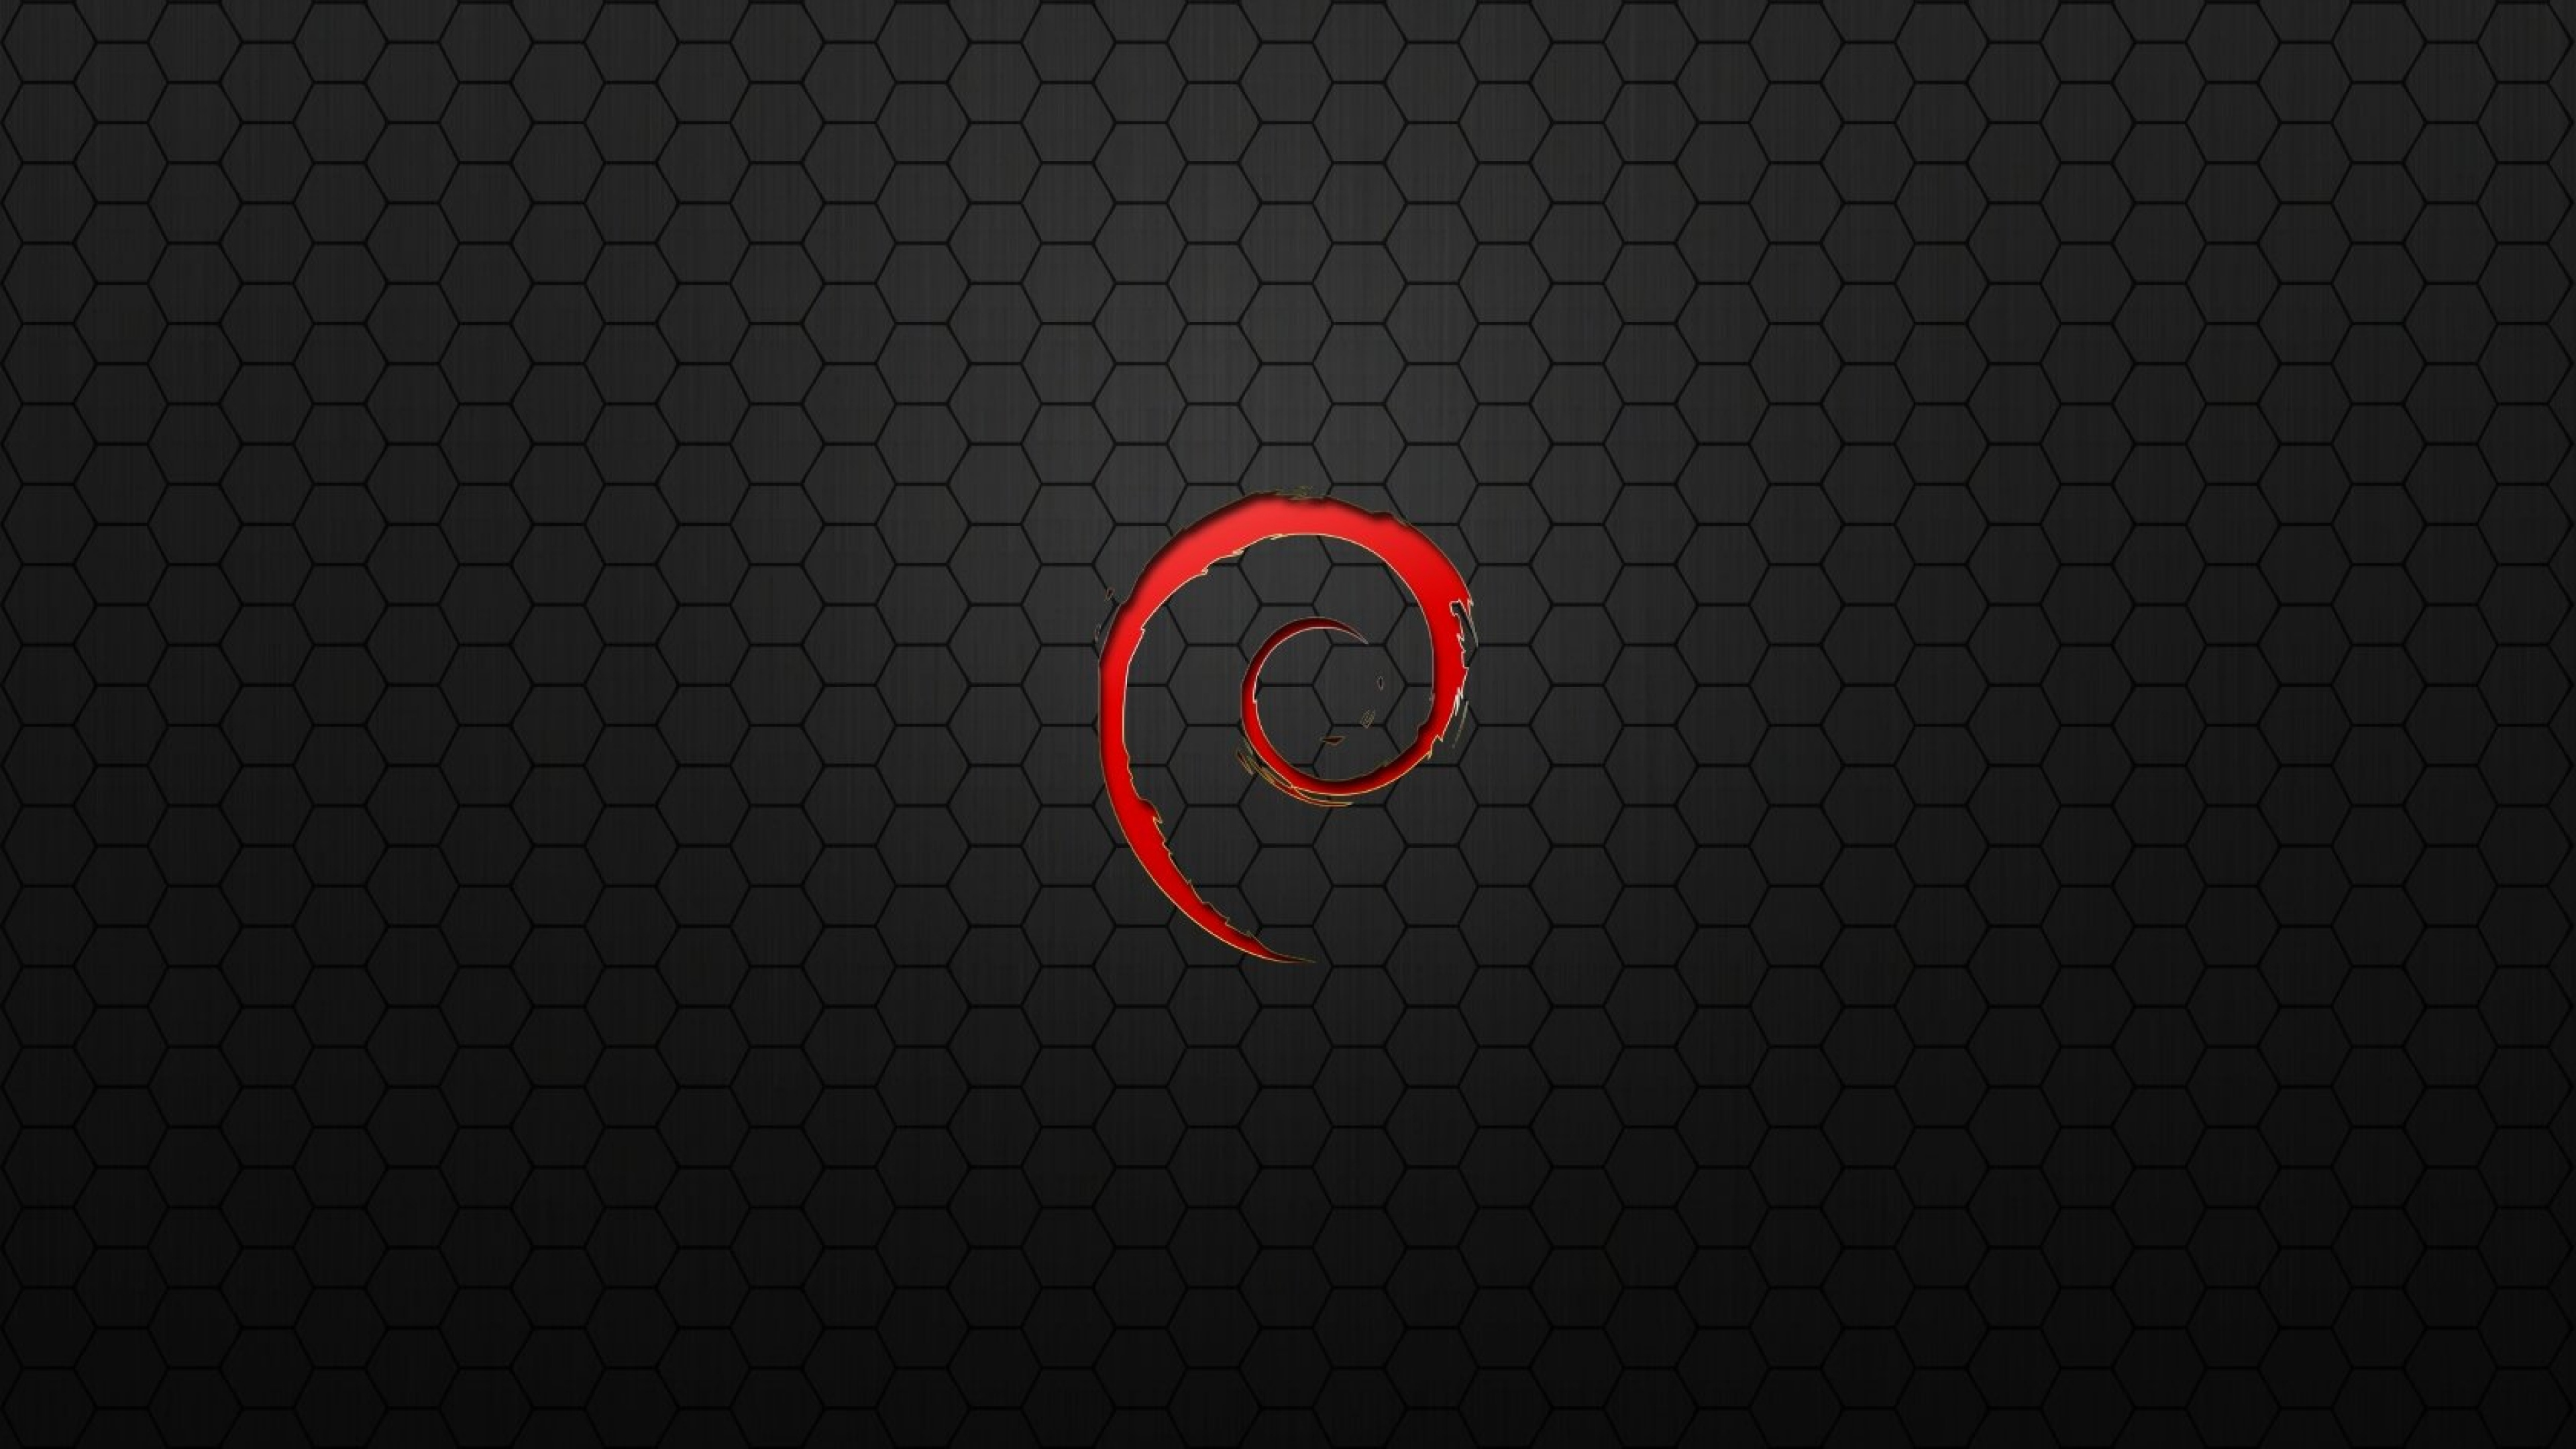 Download Wallpaper 3840x2160 Sign Spiral Red Black 4K Ultra HD HD 3840x2160